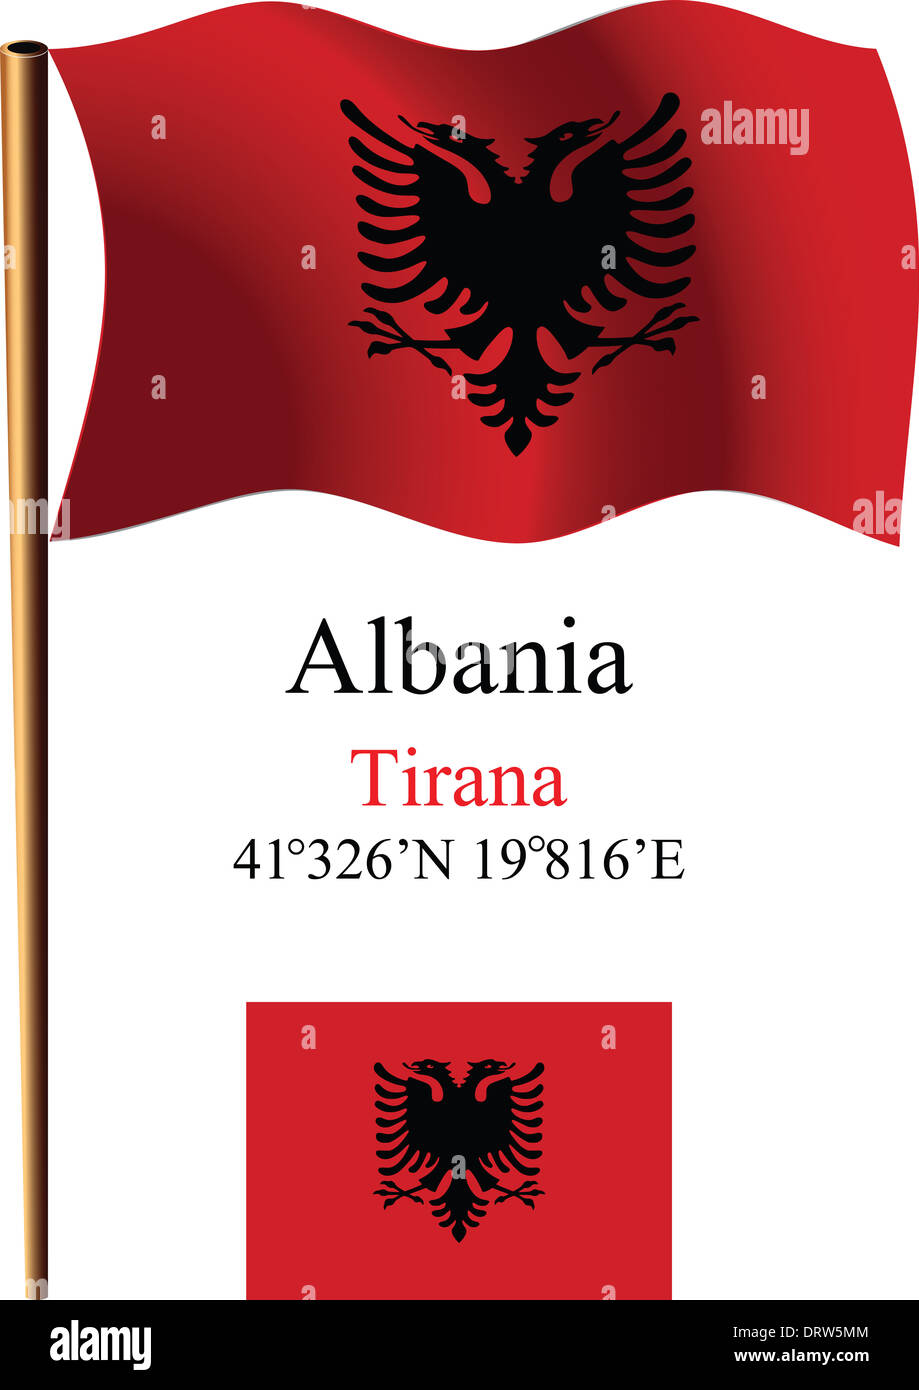 albania wavy flag and coordinates against white background, vector art illustration, image contains transparency - Stock Image